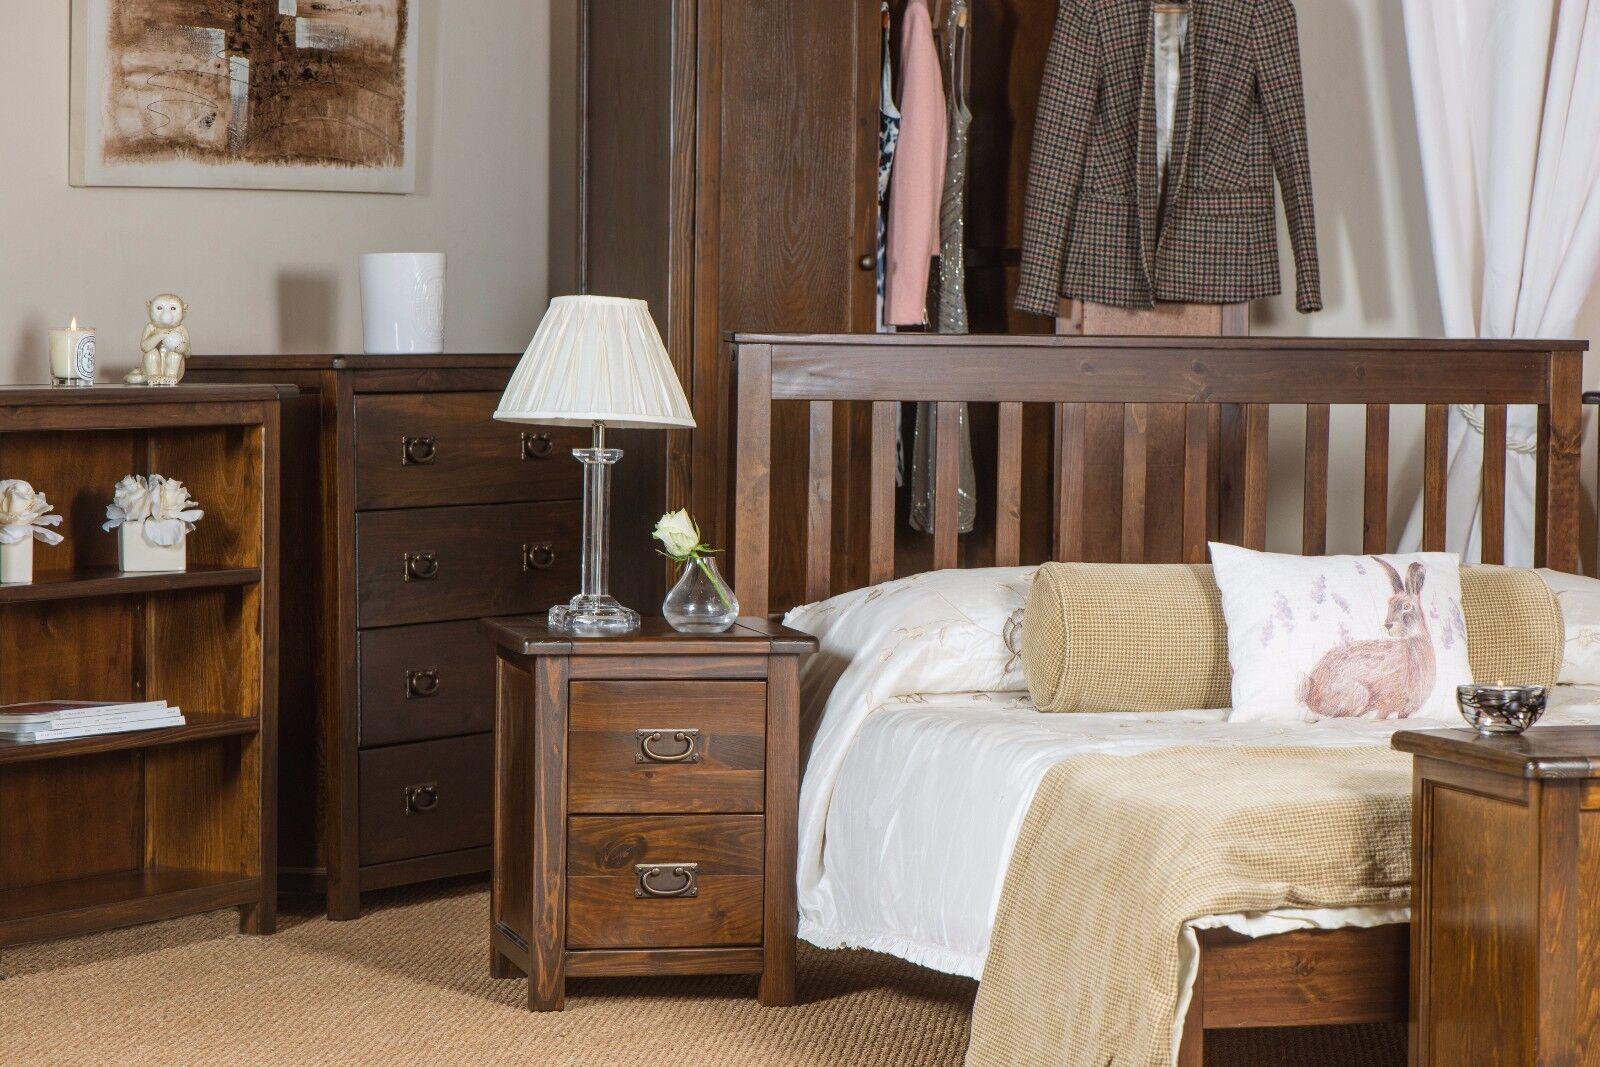 Bed furniture with drawers - Chest Of Drawers Dark Wood Baltia 4 Drawer Chest Solid Wood Bedroom Furniture